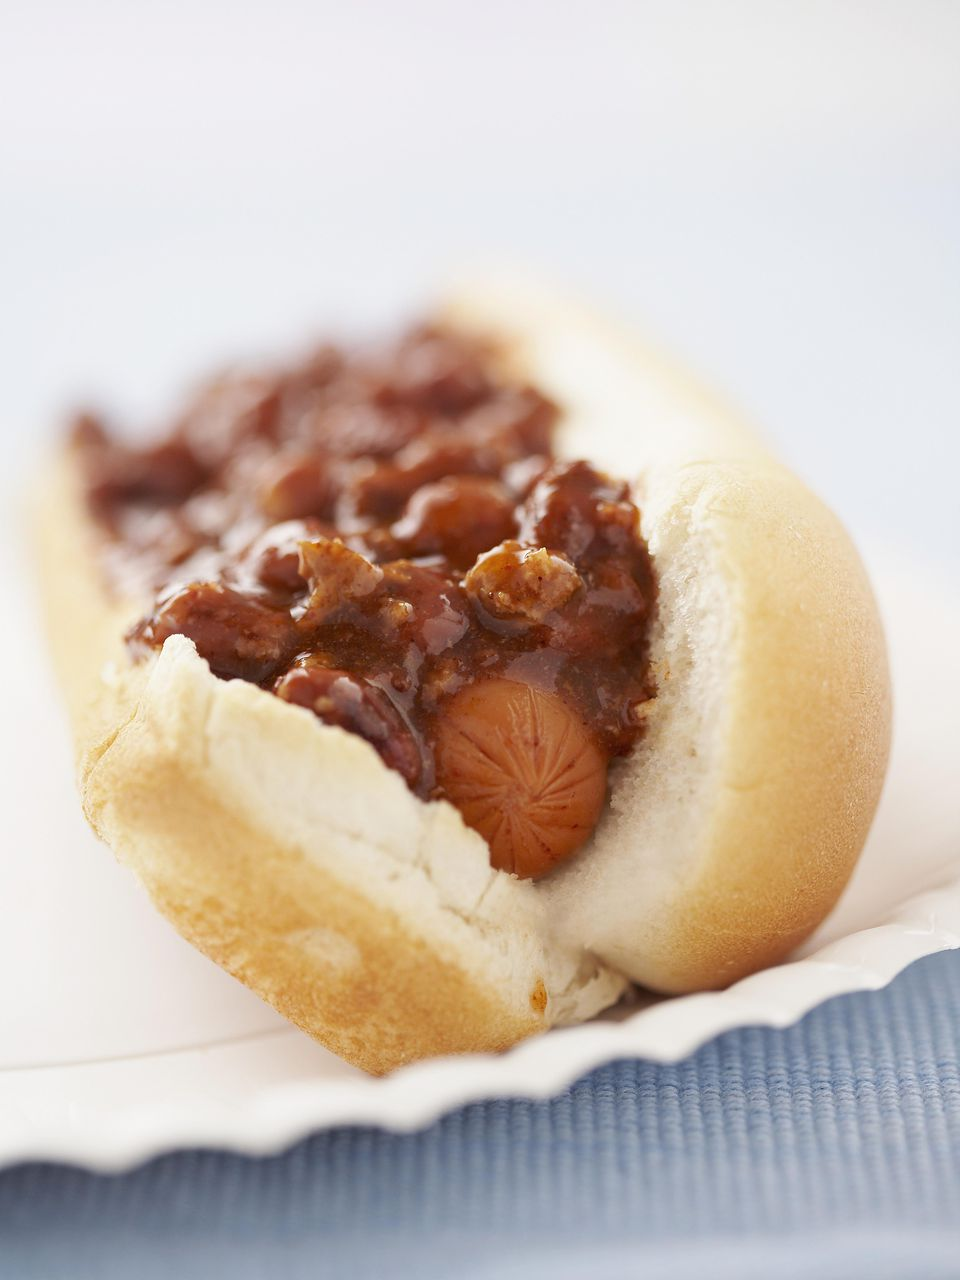 Crockpot Chili Dog